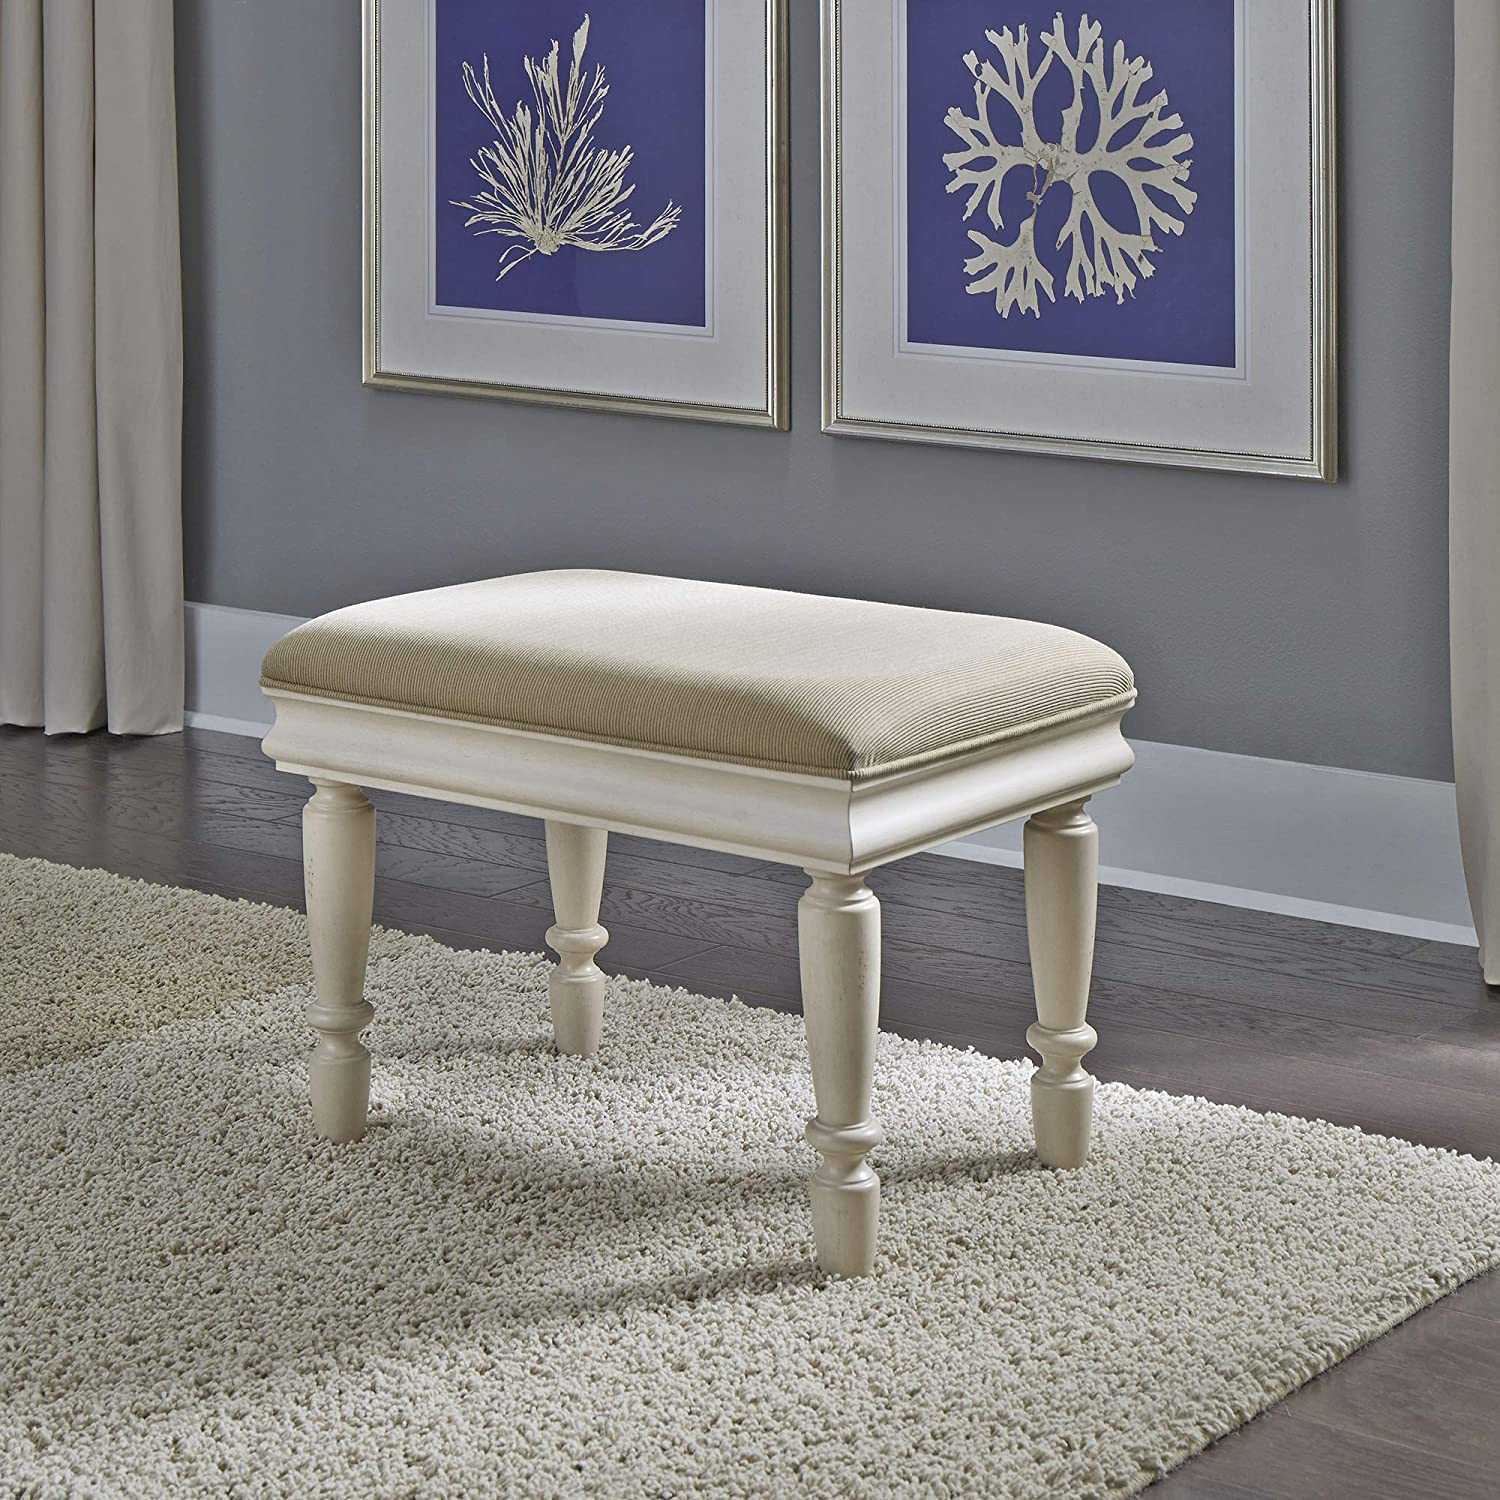 Liberty Furniture Industries Rustic Traditions II Vanity Stool, W24 x D16 x H18, White